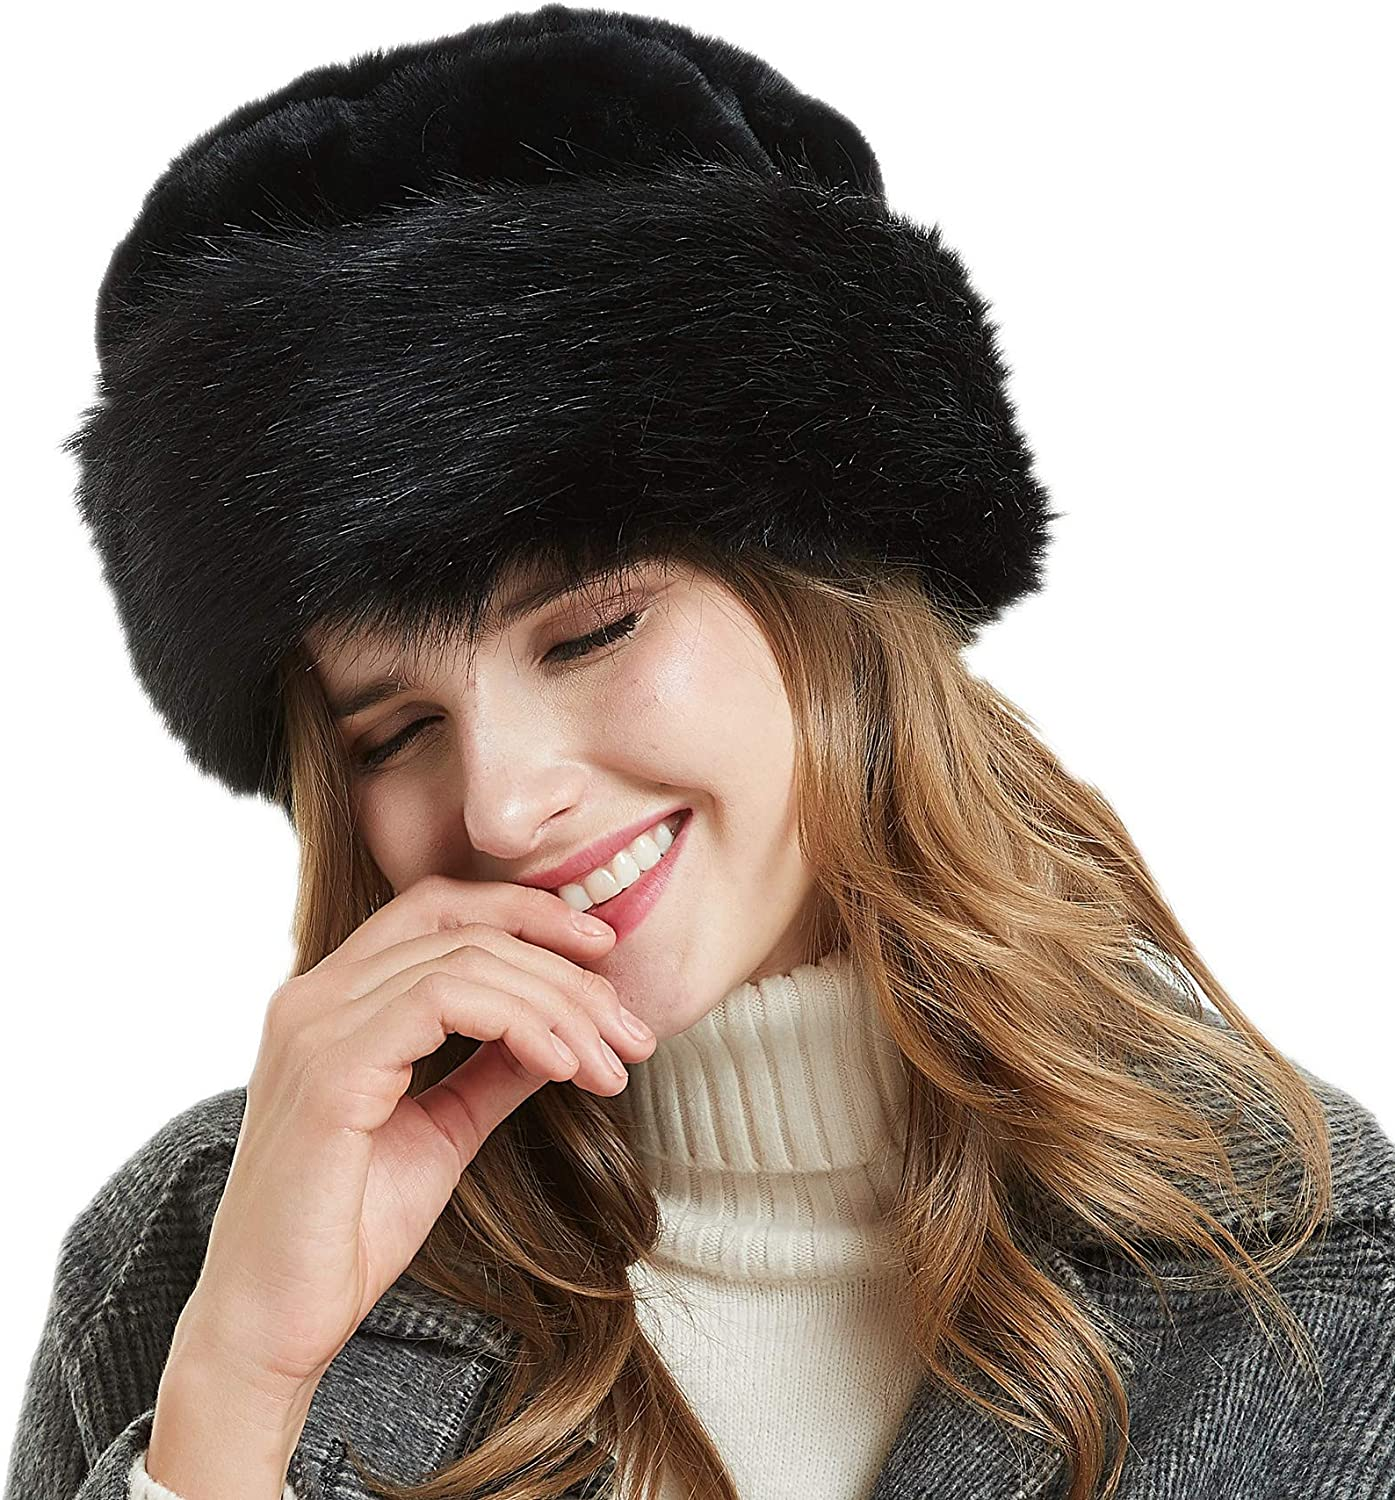 Soul Young Women's Leopard Faux Fur Hat with Fleece and Elastic for Winter